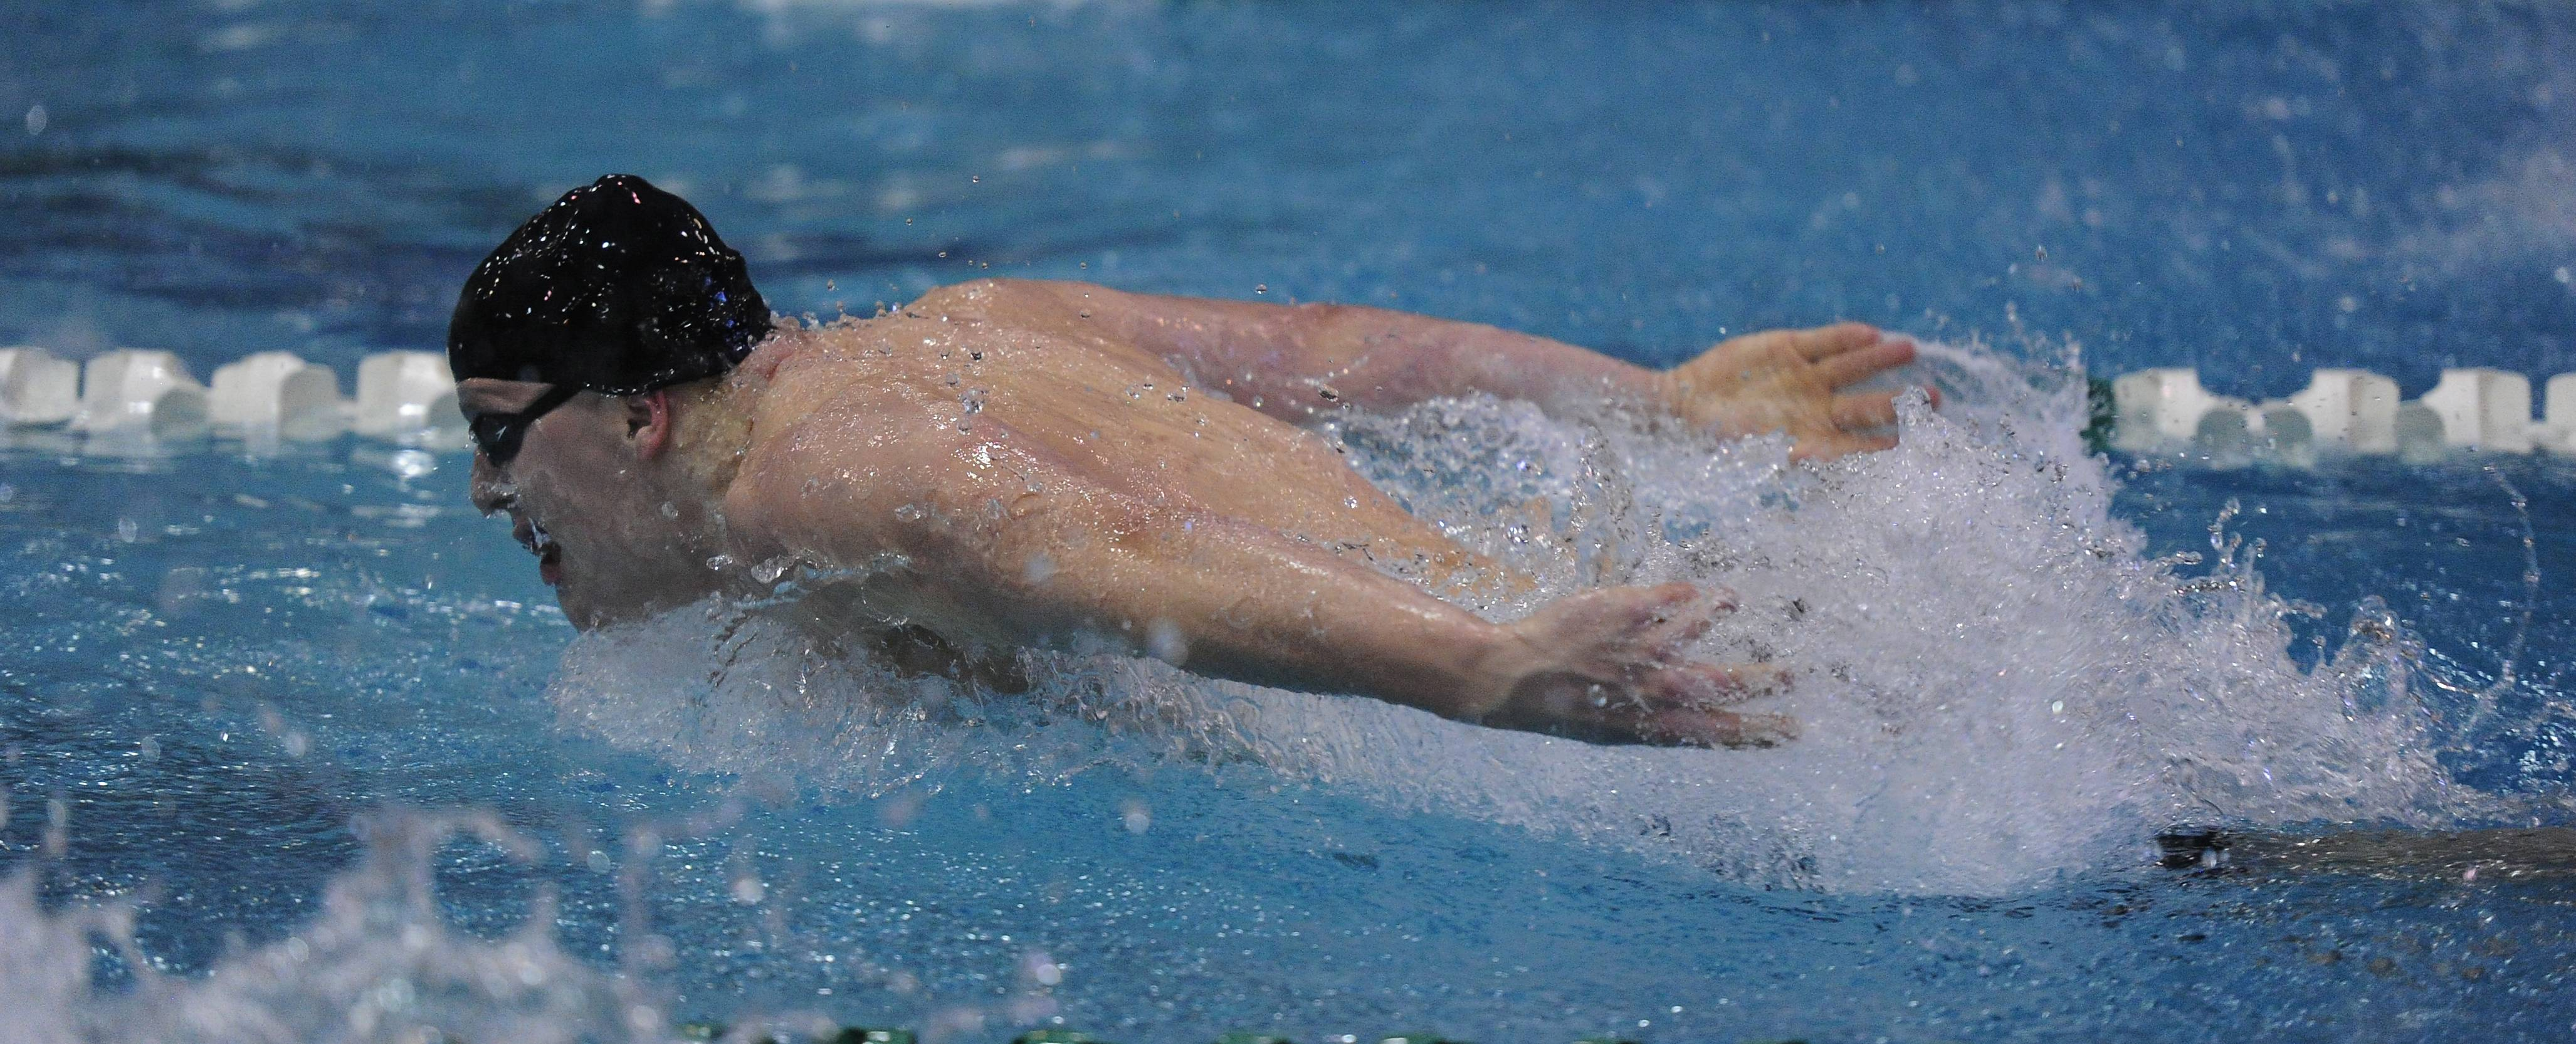 William Myhre of St. Charles North wins 1st place in heat 6 of the 100-yard butterfly in the IHSA state boys swimming preliminaries at New Trier High School on Friday.